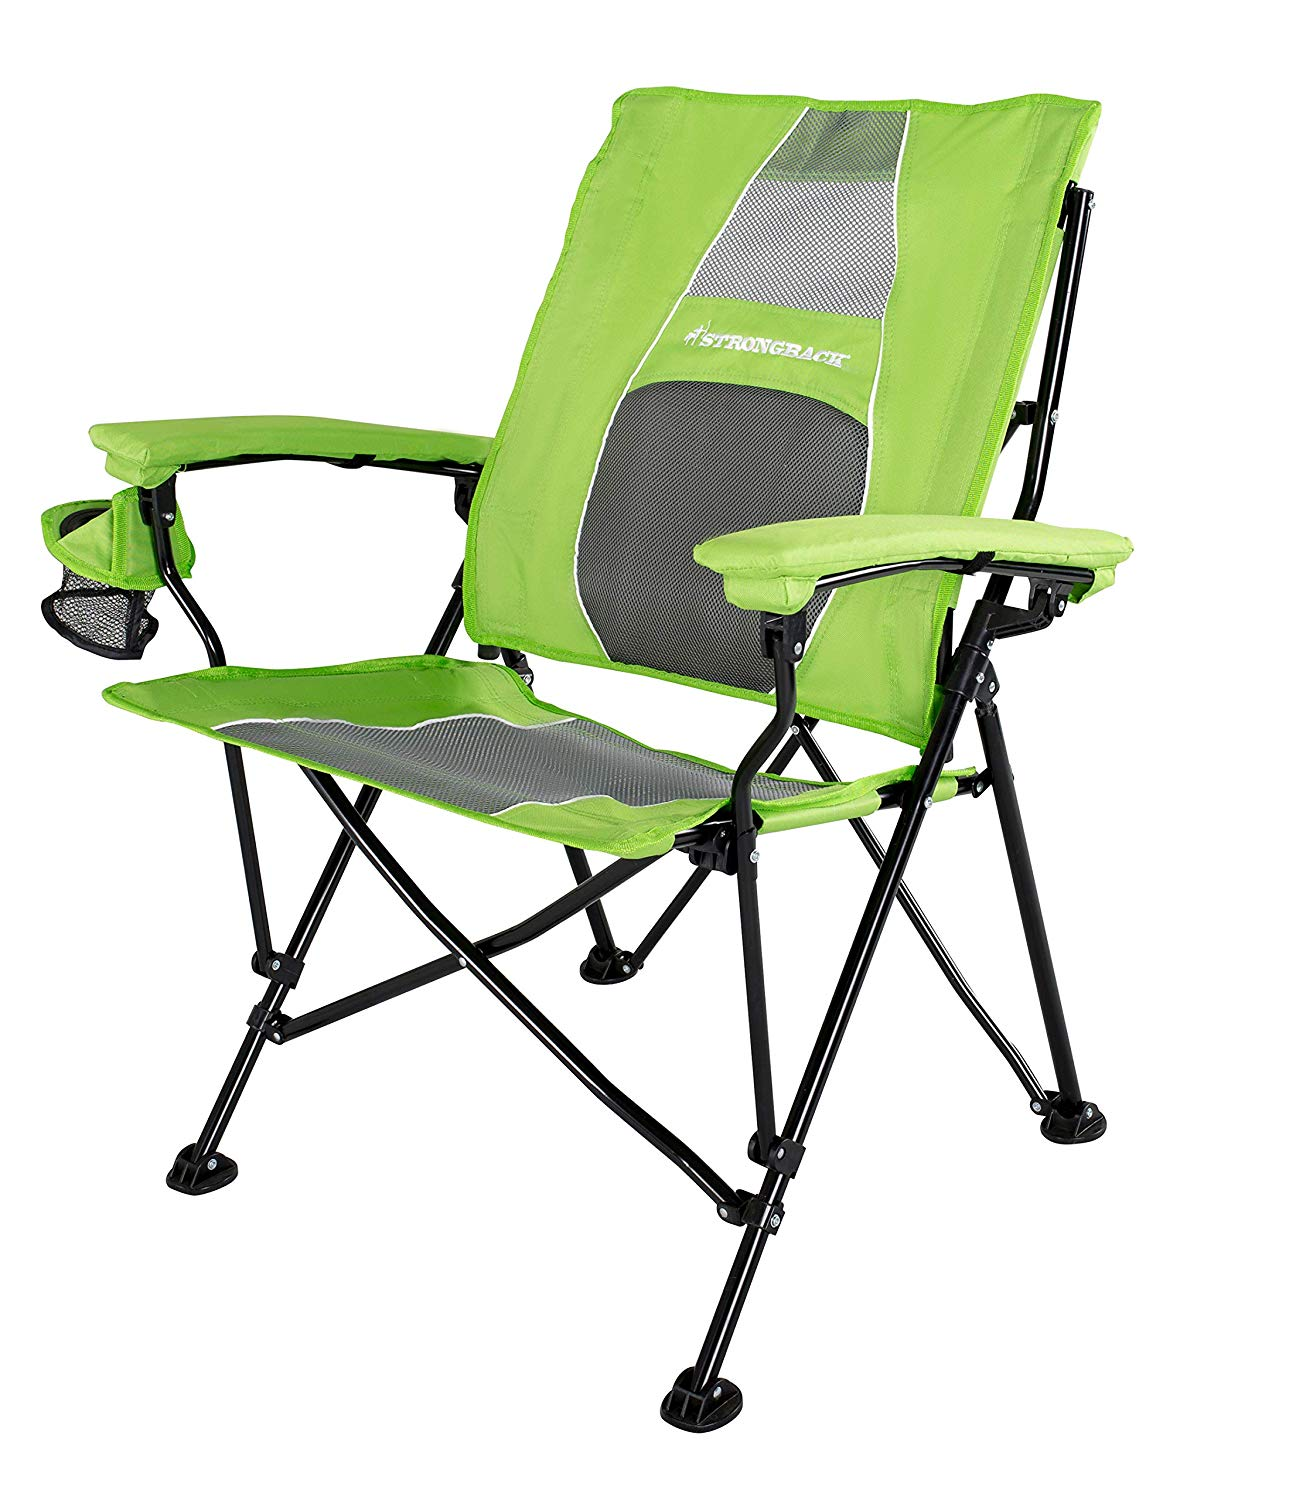 Top 10 Best Camping Chair For Bad Back 2021 Reviews 2